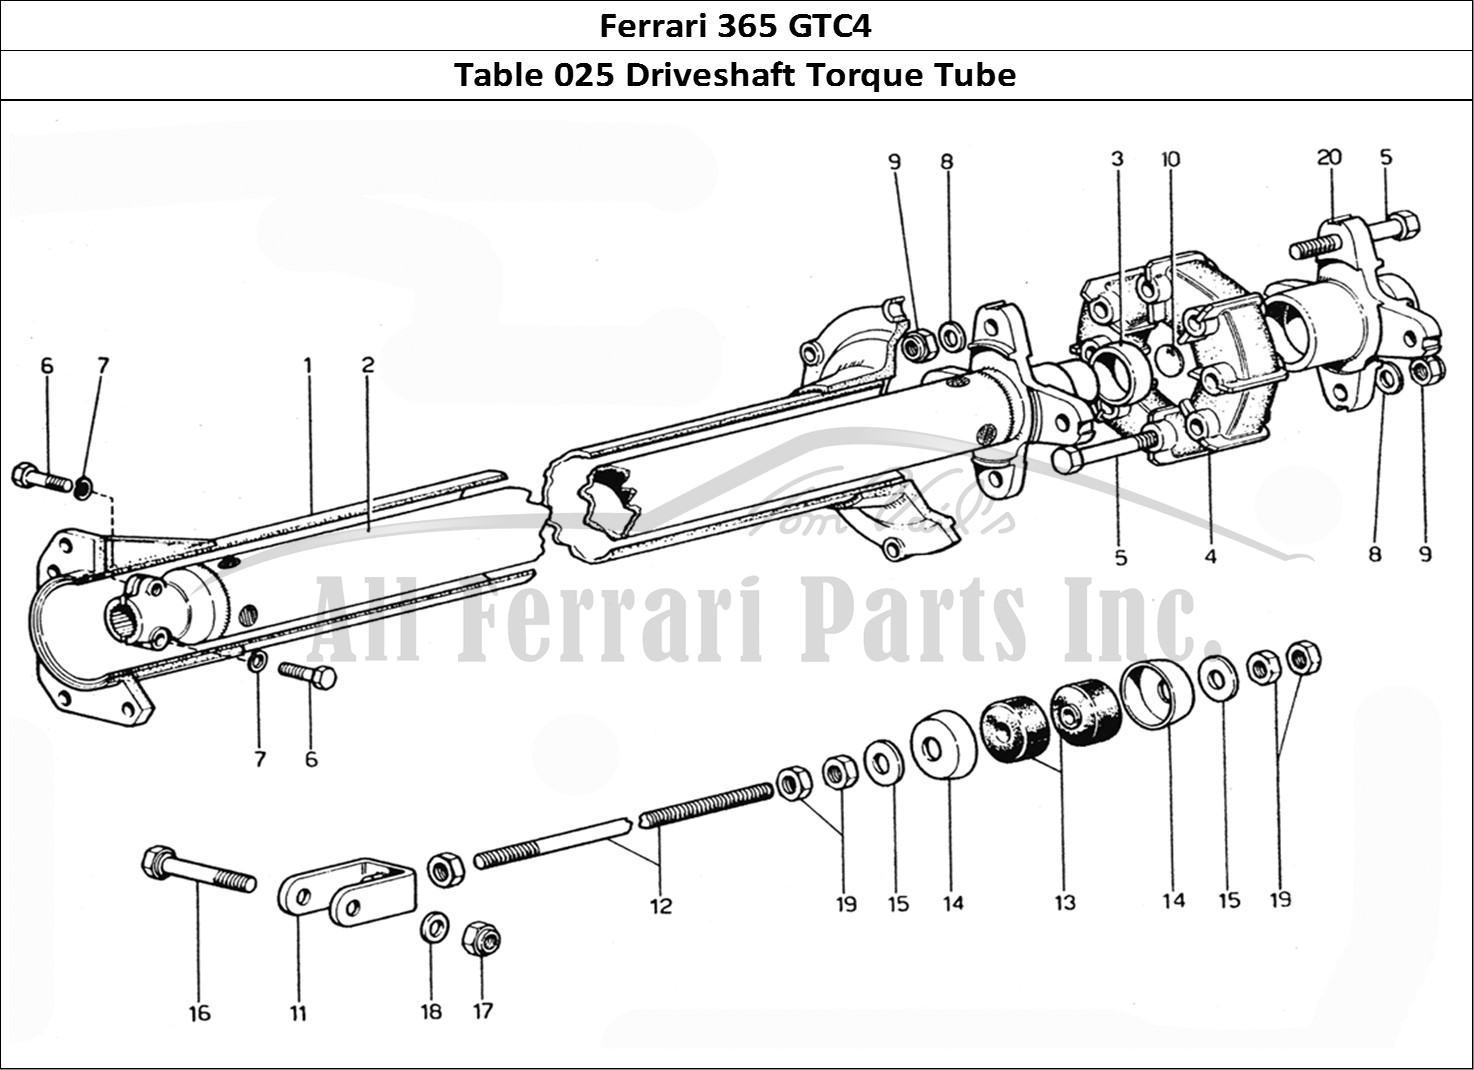 Buy Original Ferrari 365 Gtc4 025 Driveshaft Torque Tube